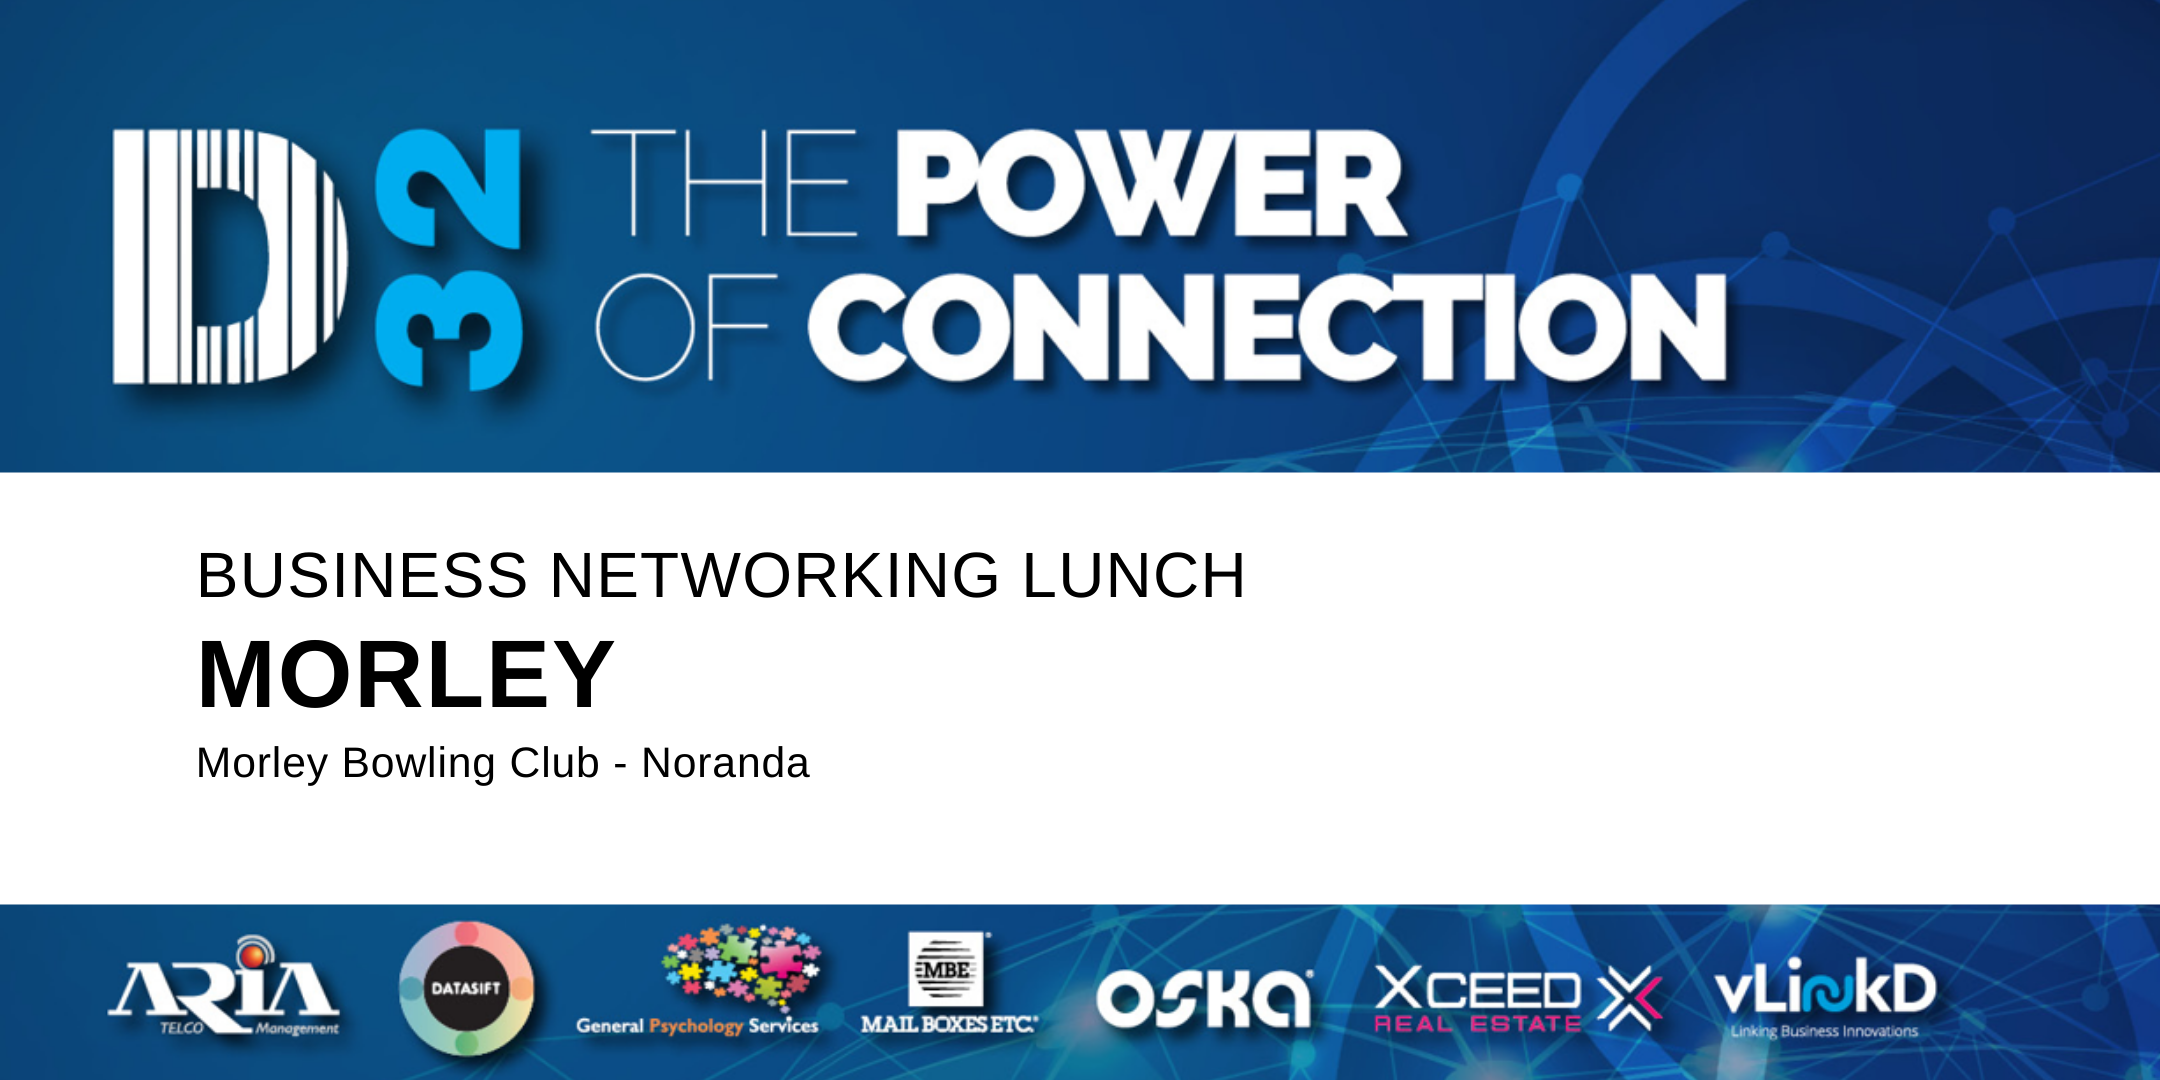 District32 Business Networking Perth – Morley (Noranda) - Wed 29th Jan